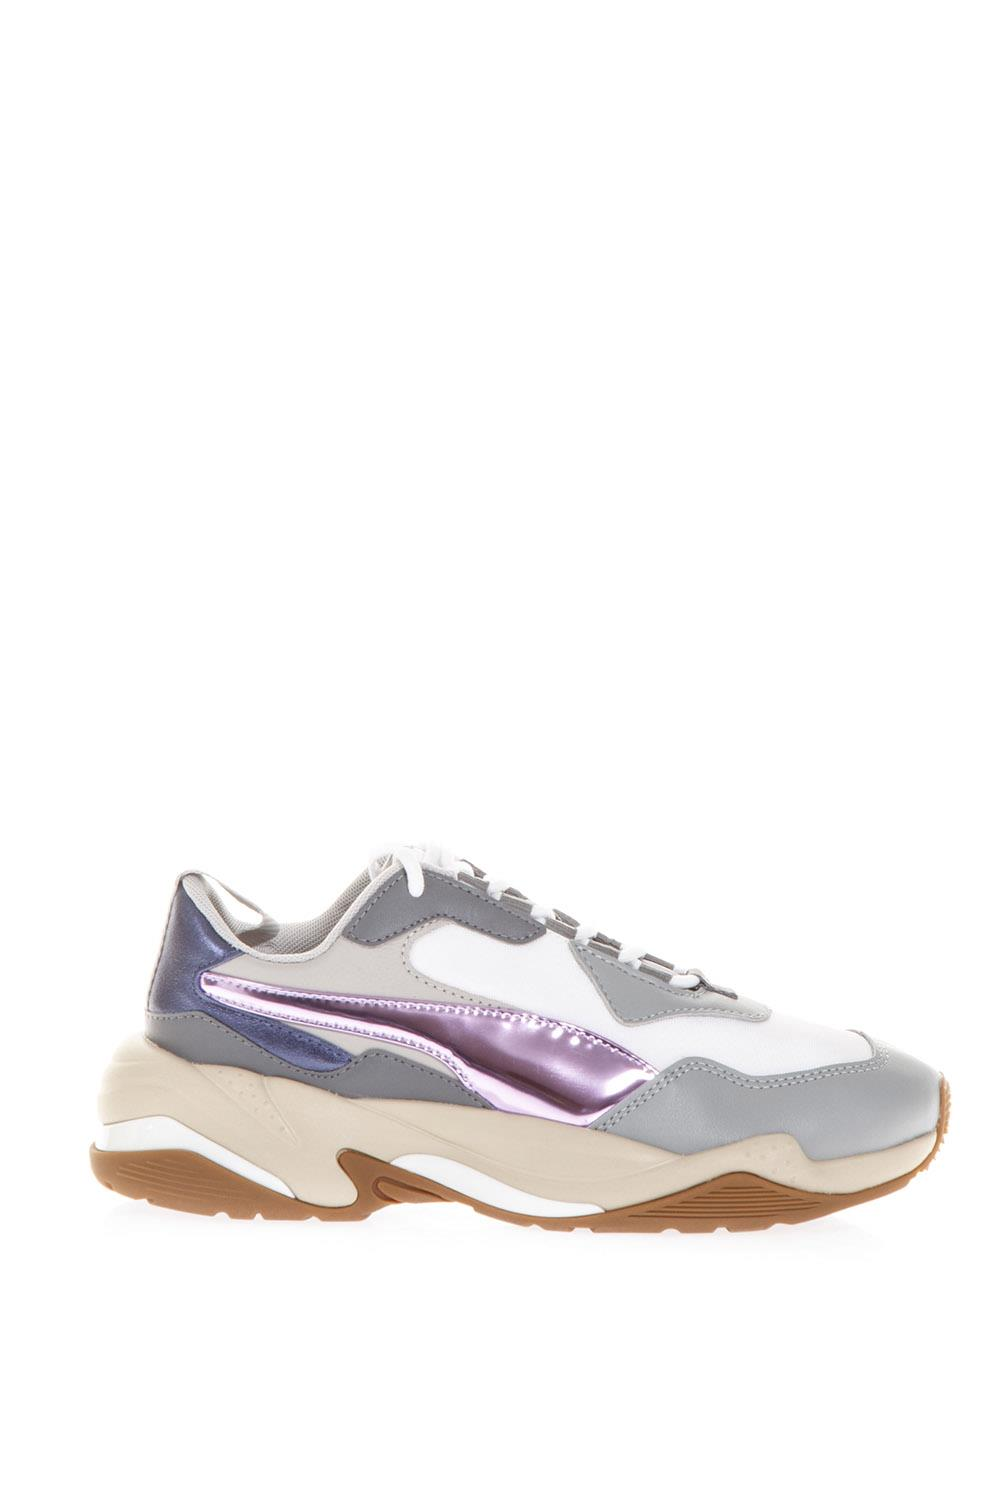 731e76e3c80 THUNDER ELECTRIC SNEAKERS FW 2018 - PUMA SELECT - Boutique Galiano